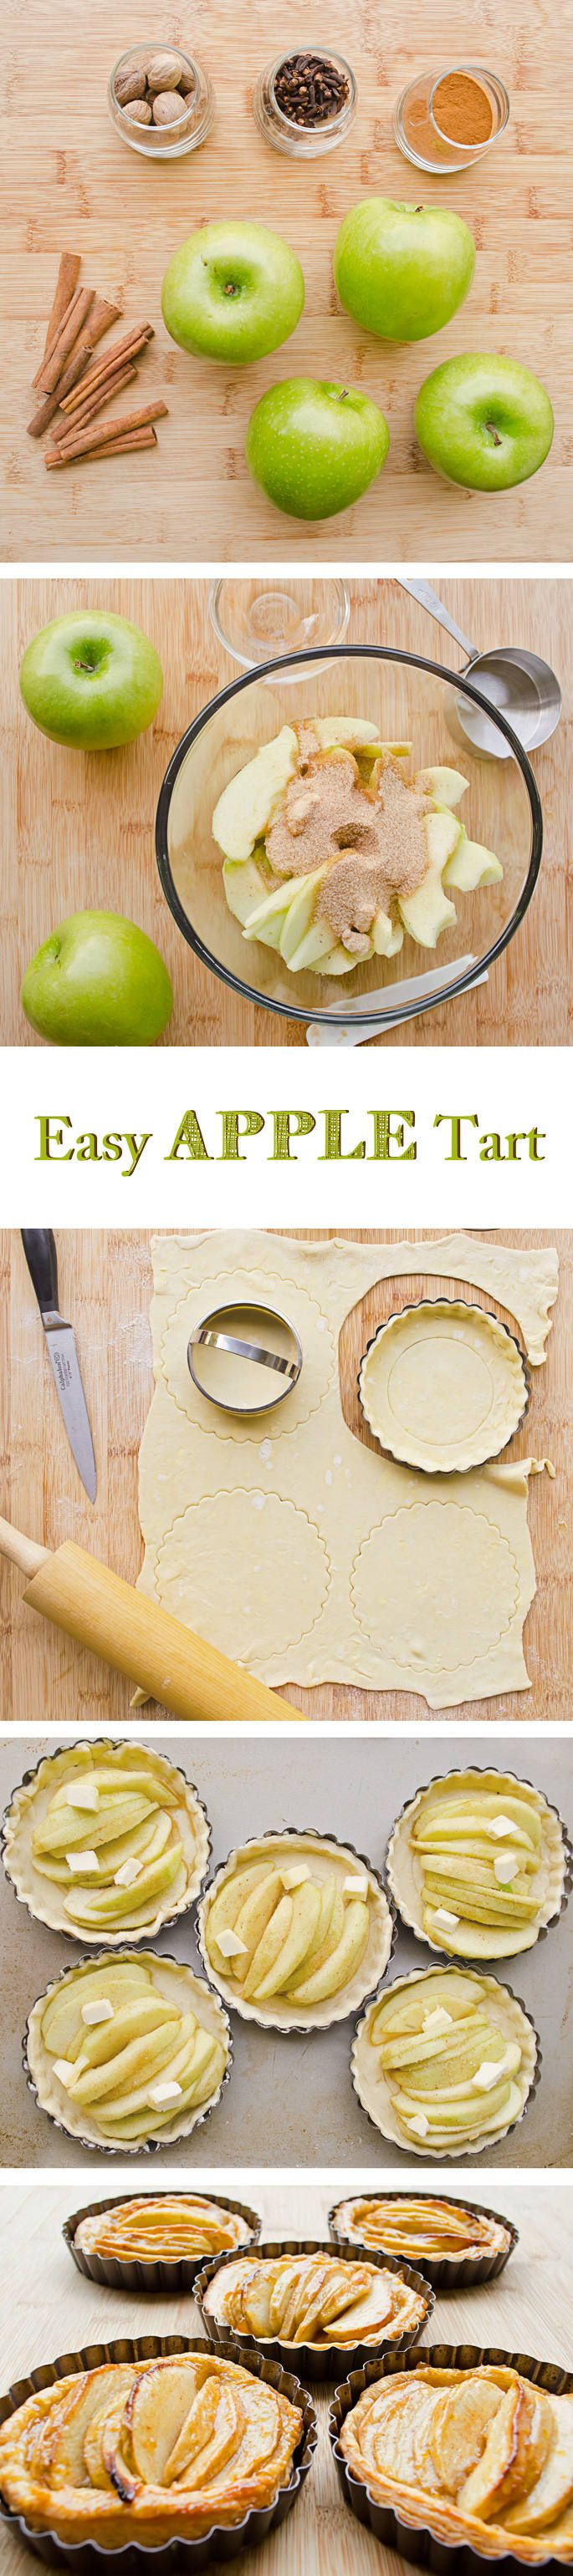 Easy Apple Tart Recipe with step by step instructions. So delicious! They're like little apple pies in a flaky puff pastry crust.